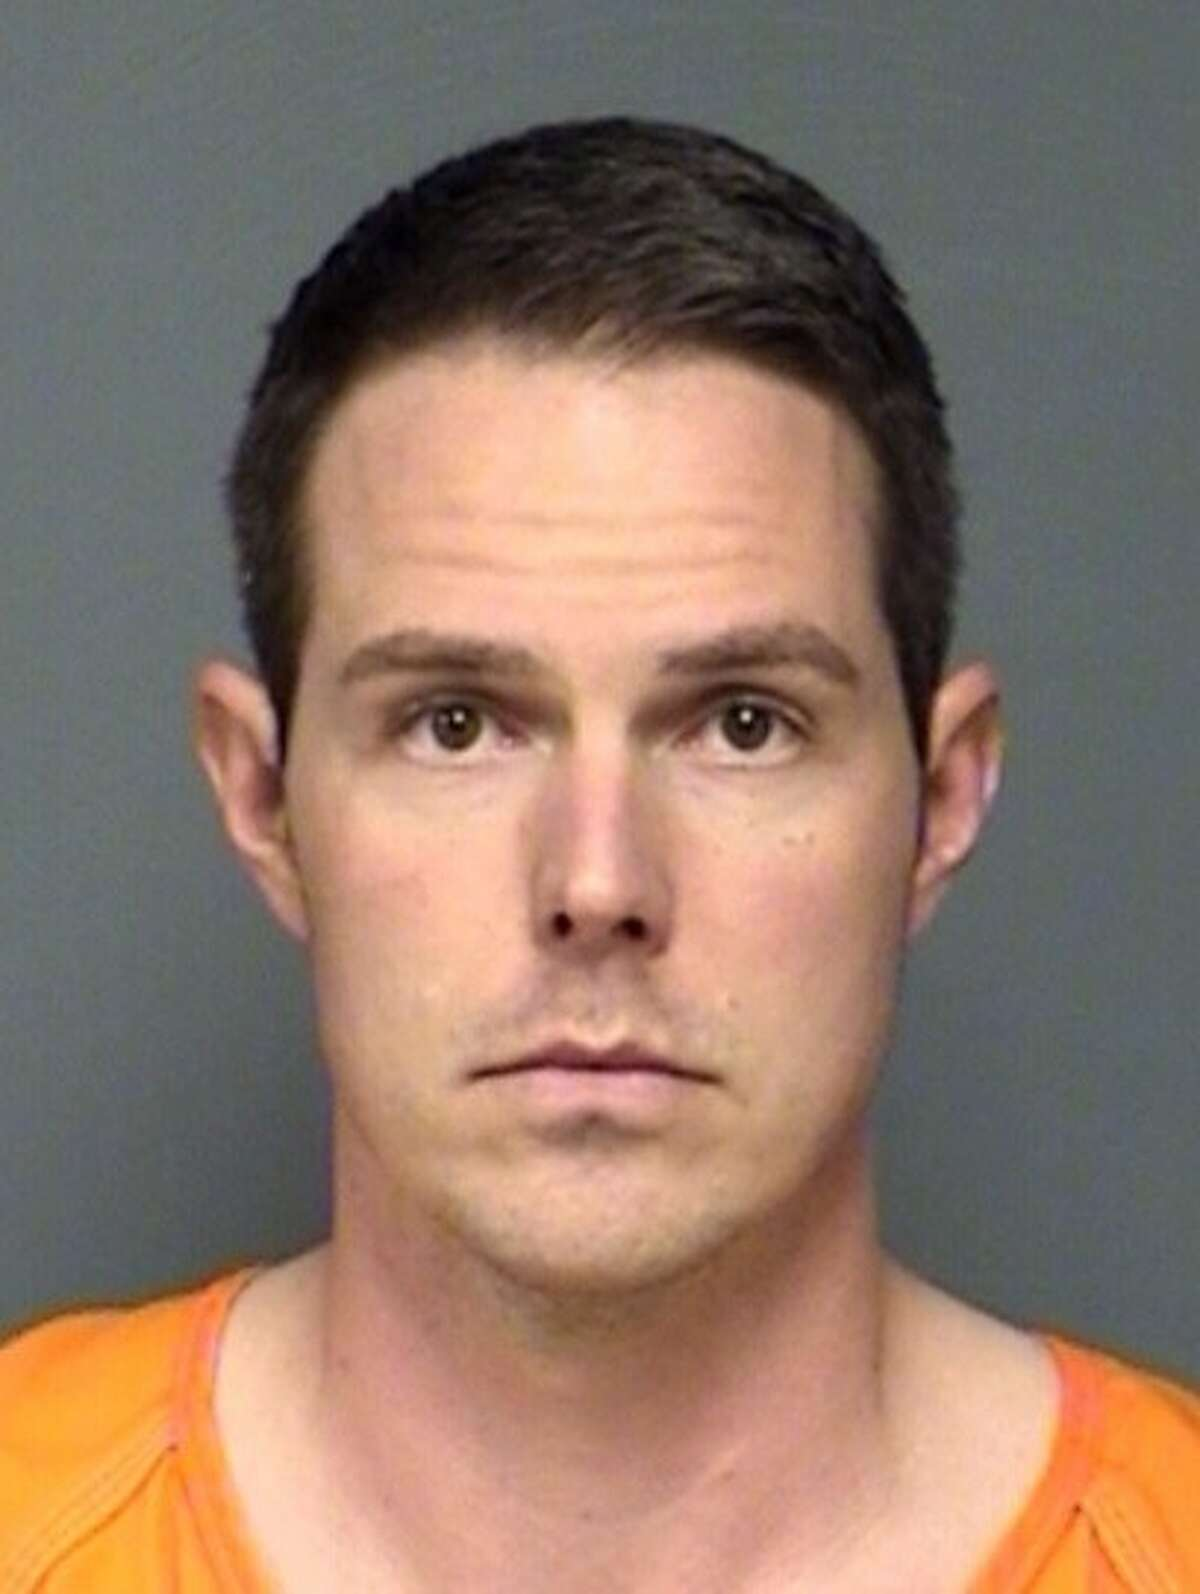 Luke Waley, a 34-year-old teacher at North Mesquite High School, was arrested April 29, 2015, after an Mesquite ISD representative notified police about a possible relationship between Waley and a student. Waley was charged with two counts of sexual assault of a child, a second degree felony.